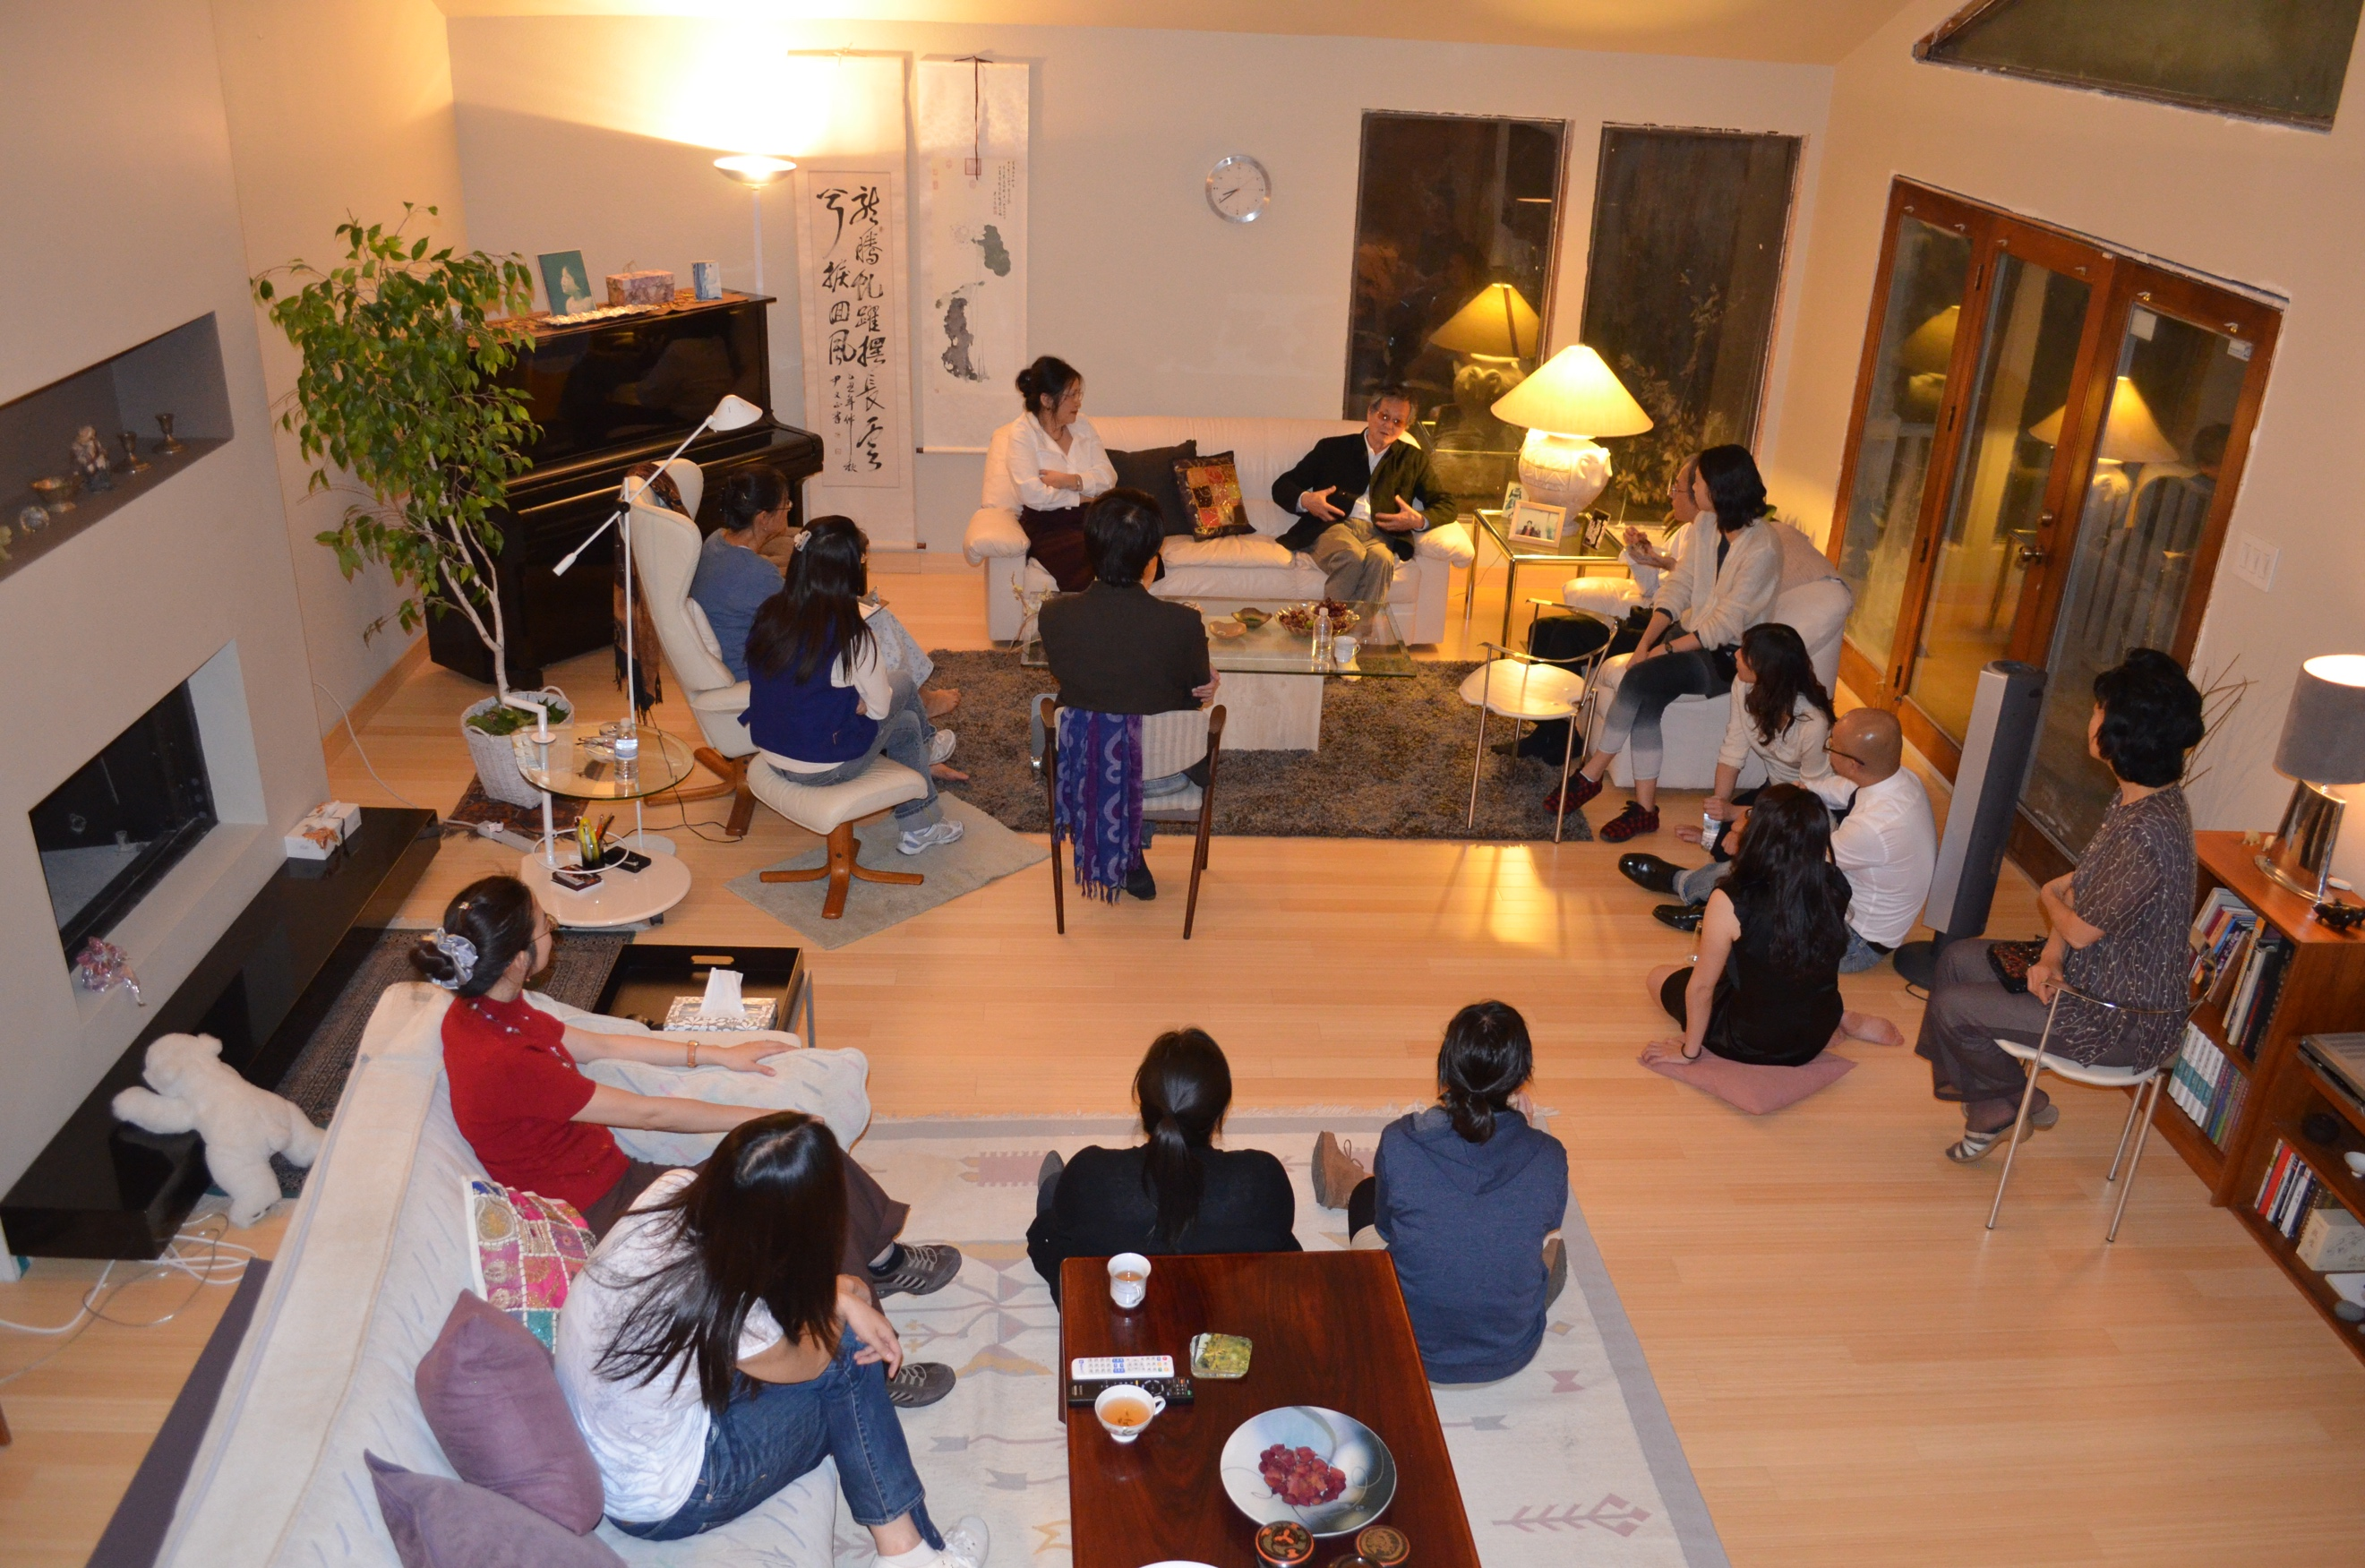 Writer Huang Chunming talked to UT faculty and graduate students at Professor Yvonne Chang's house on October 20, 2011.